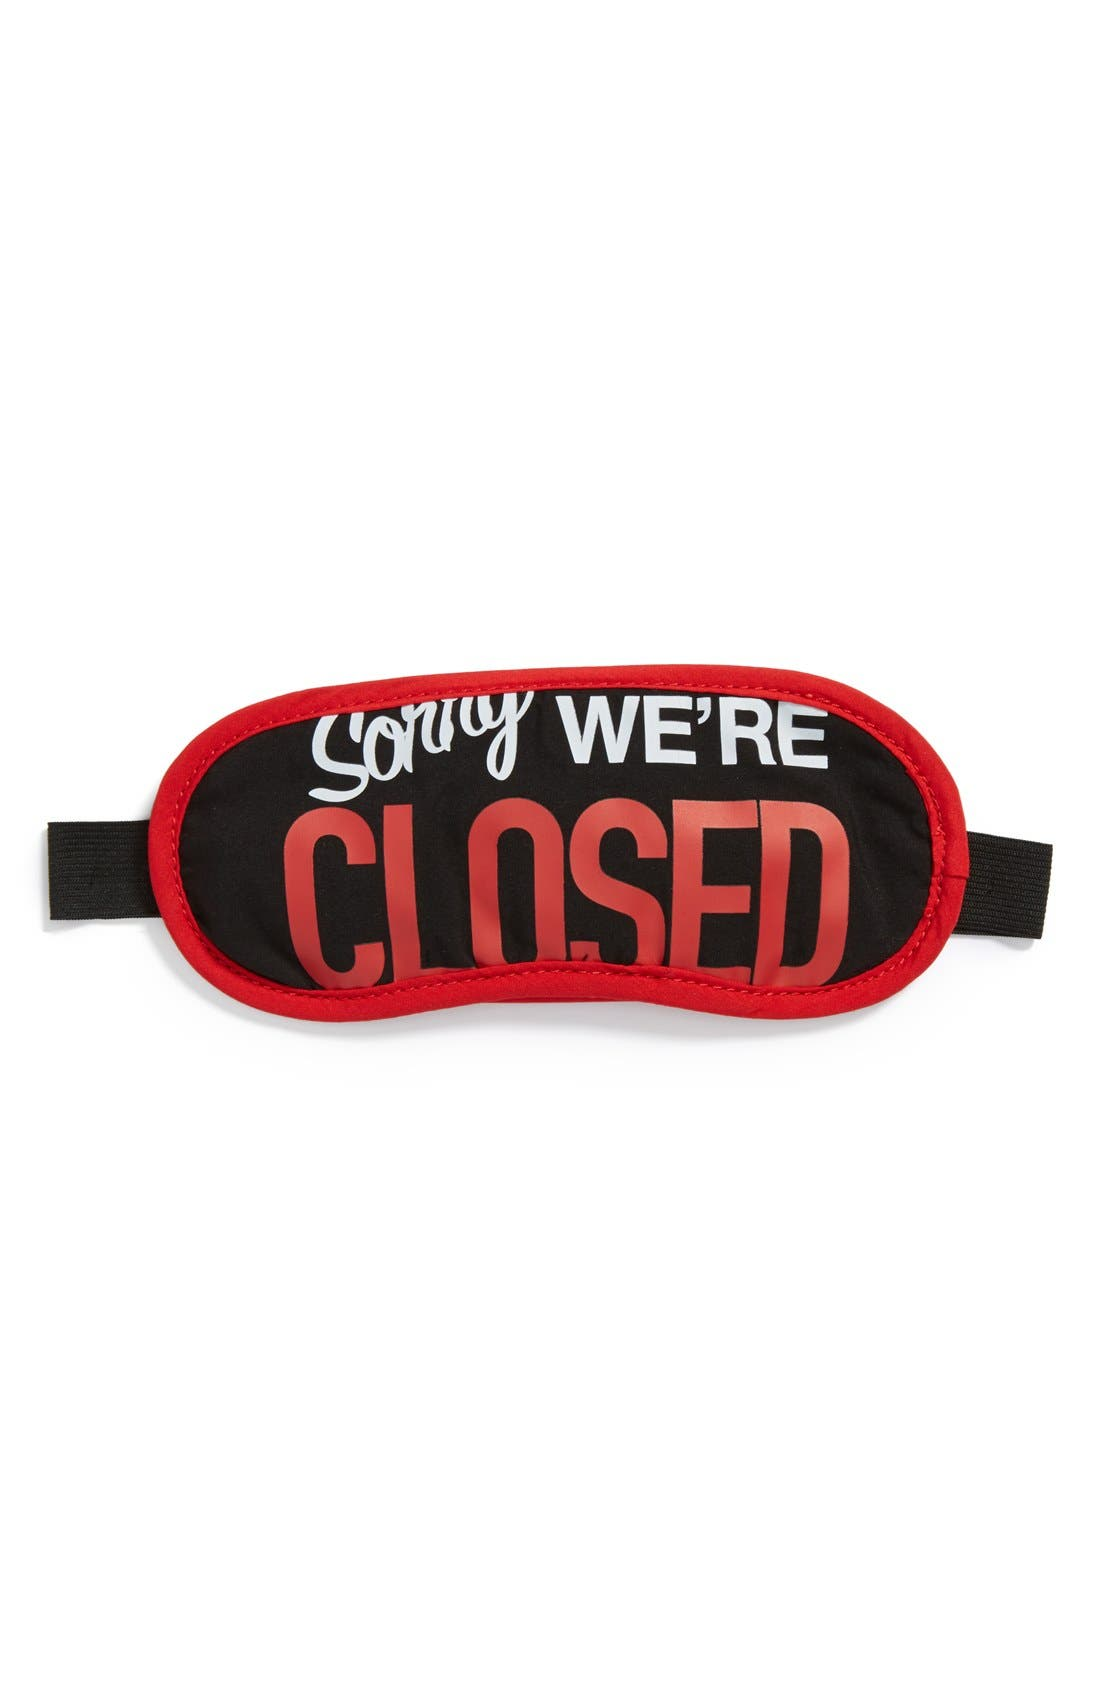 'Sorry, We're Closed' Sleep Mask,                         Main,                         color, Black